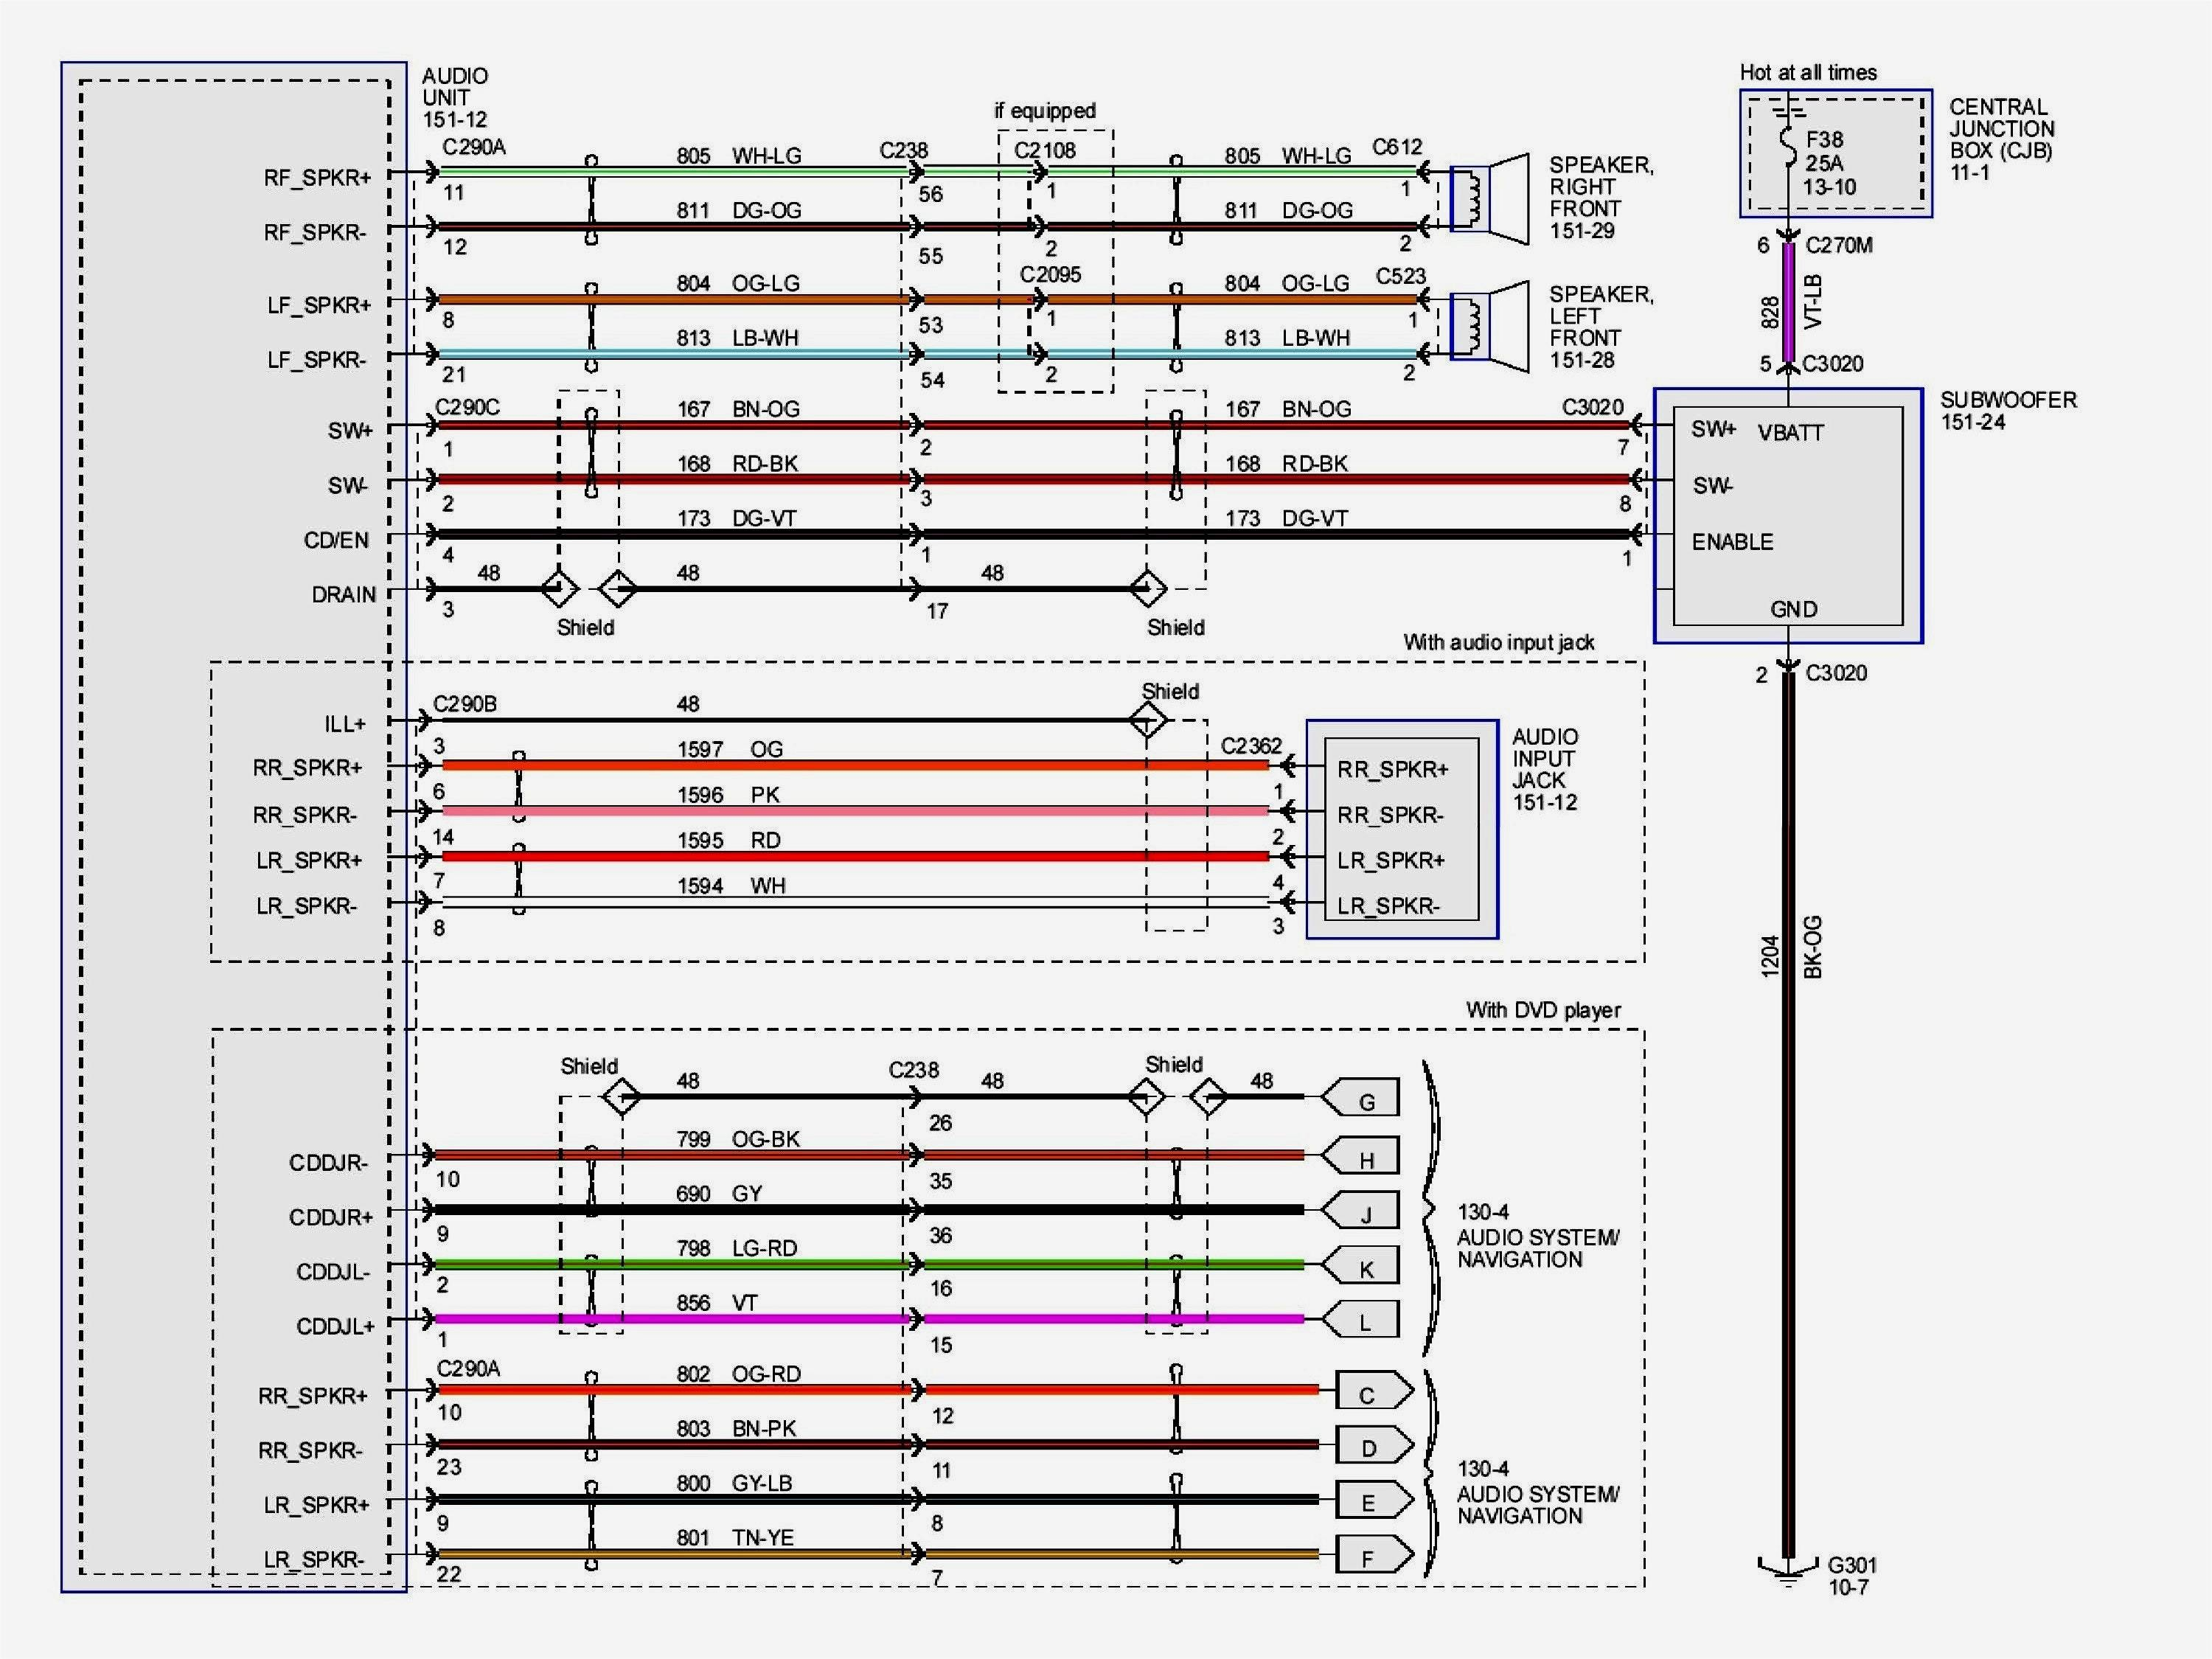 2007 ford Escape Engine Diagram 2007 ford Mustang Wiring Diagram Wiring Diagram Of 2007 ford Escape Engine Diagram